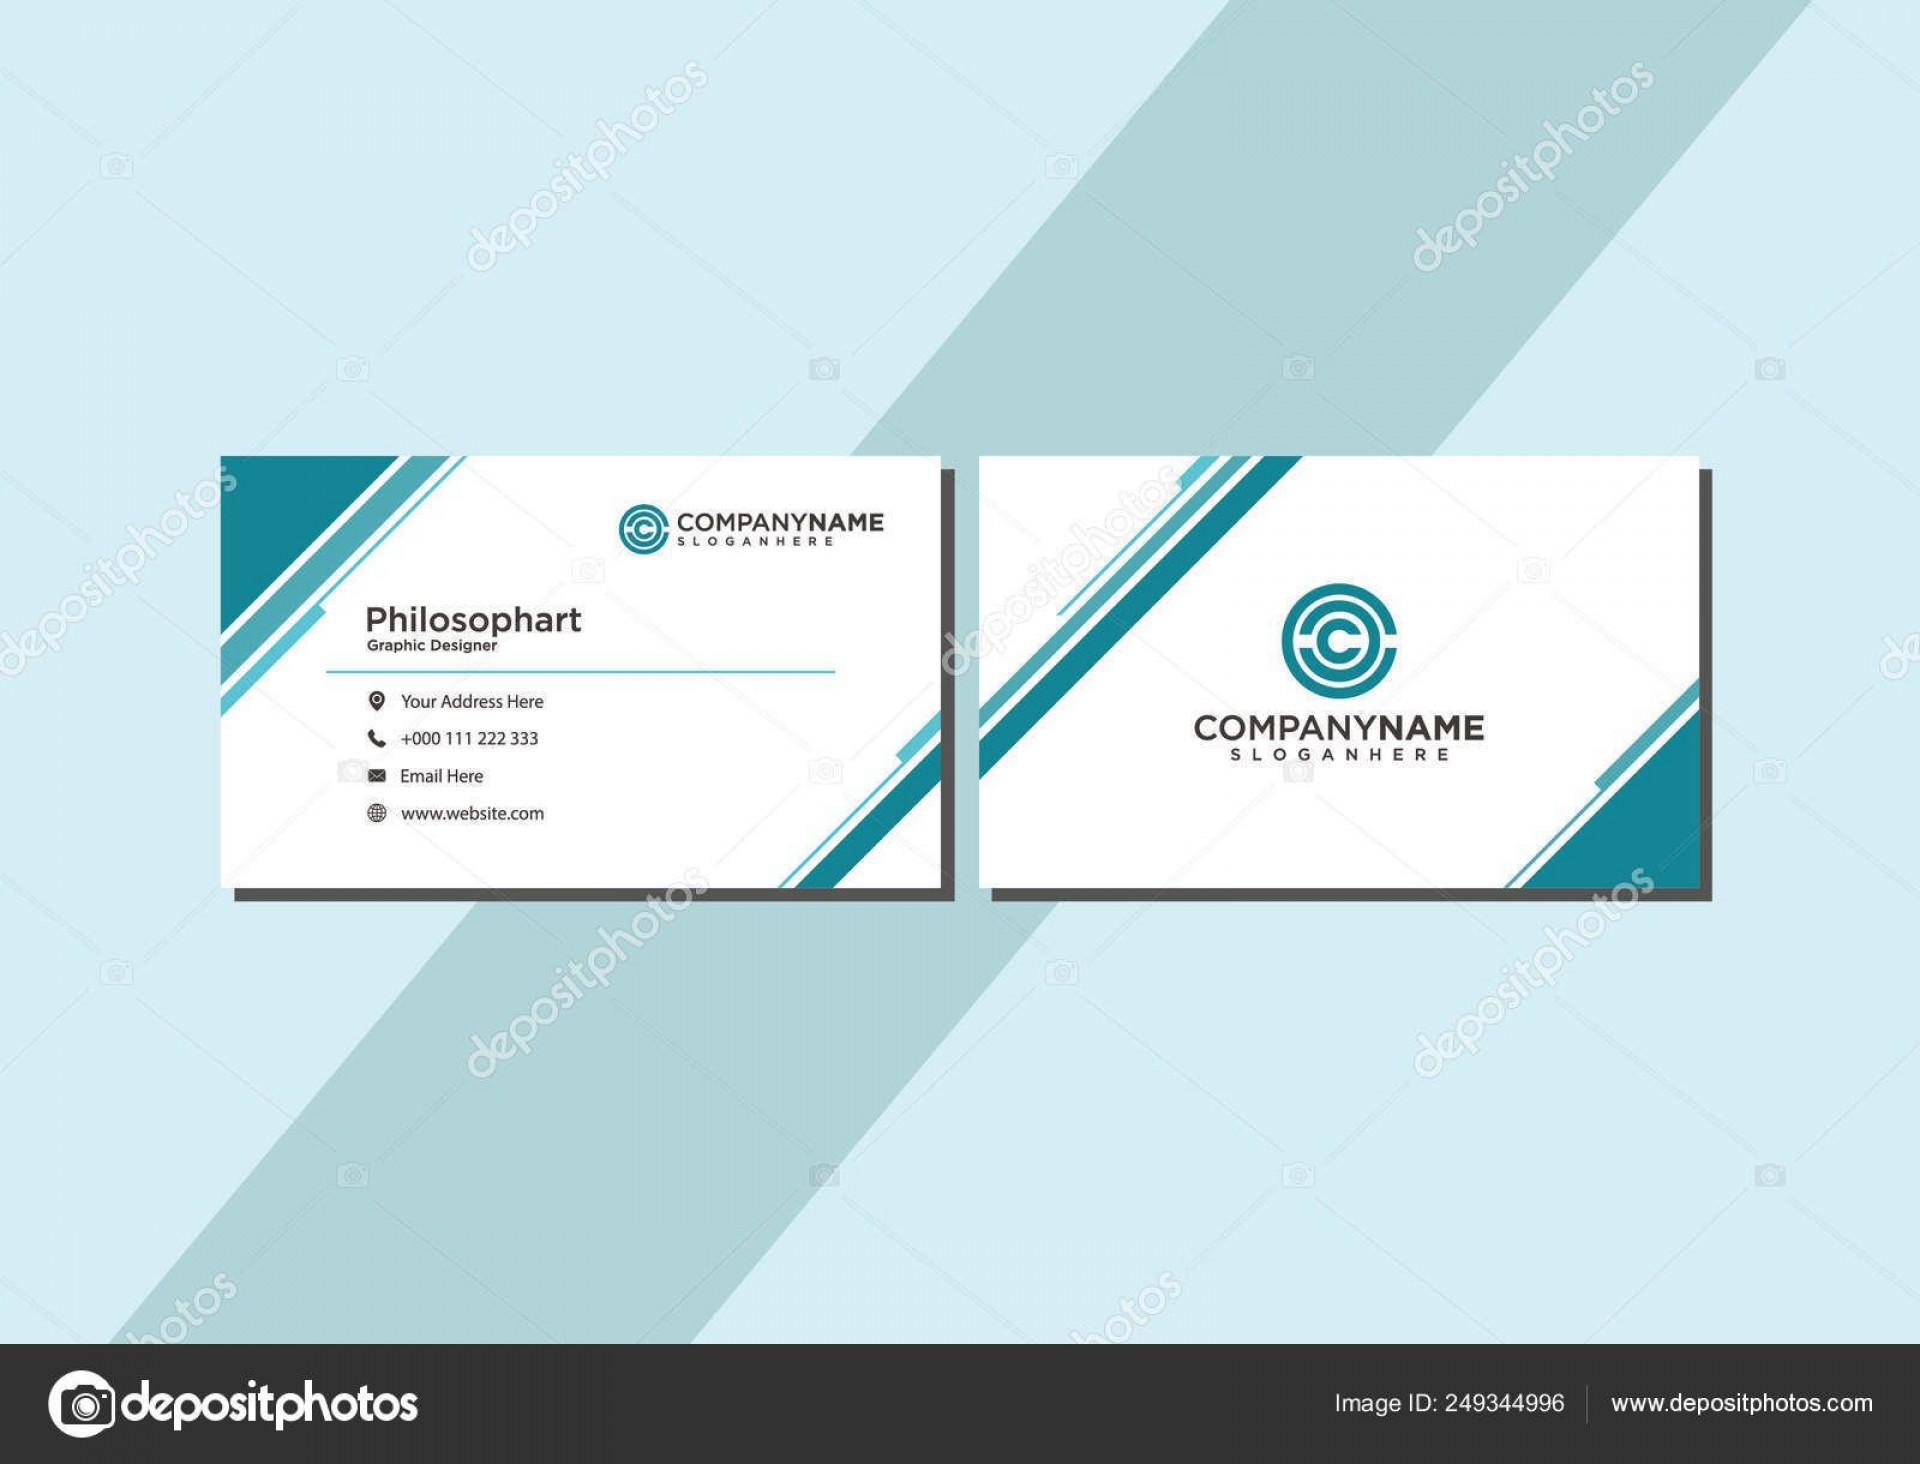 006 Unusual Simple Visiting Card Template Sample  Templates Busines Psd Design File Free Download1920